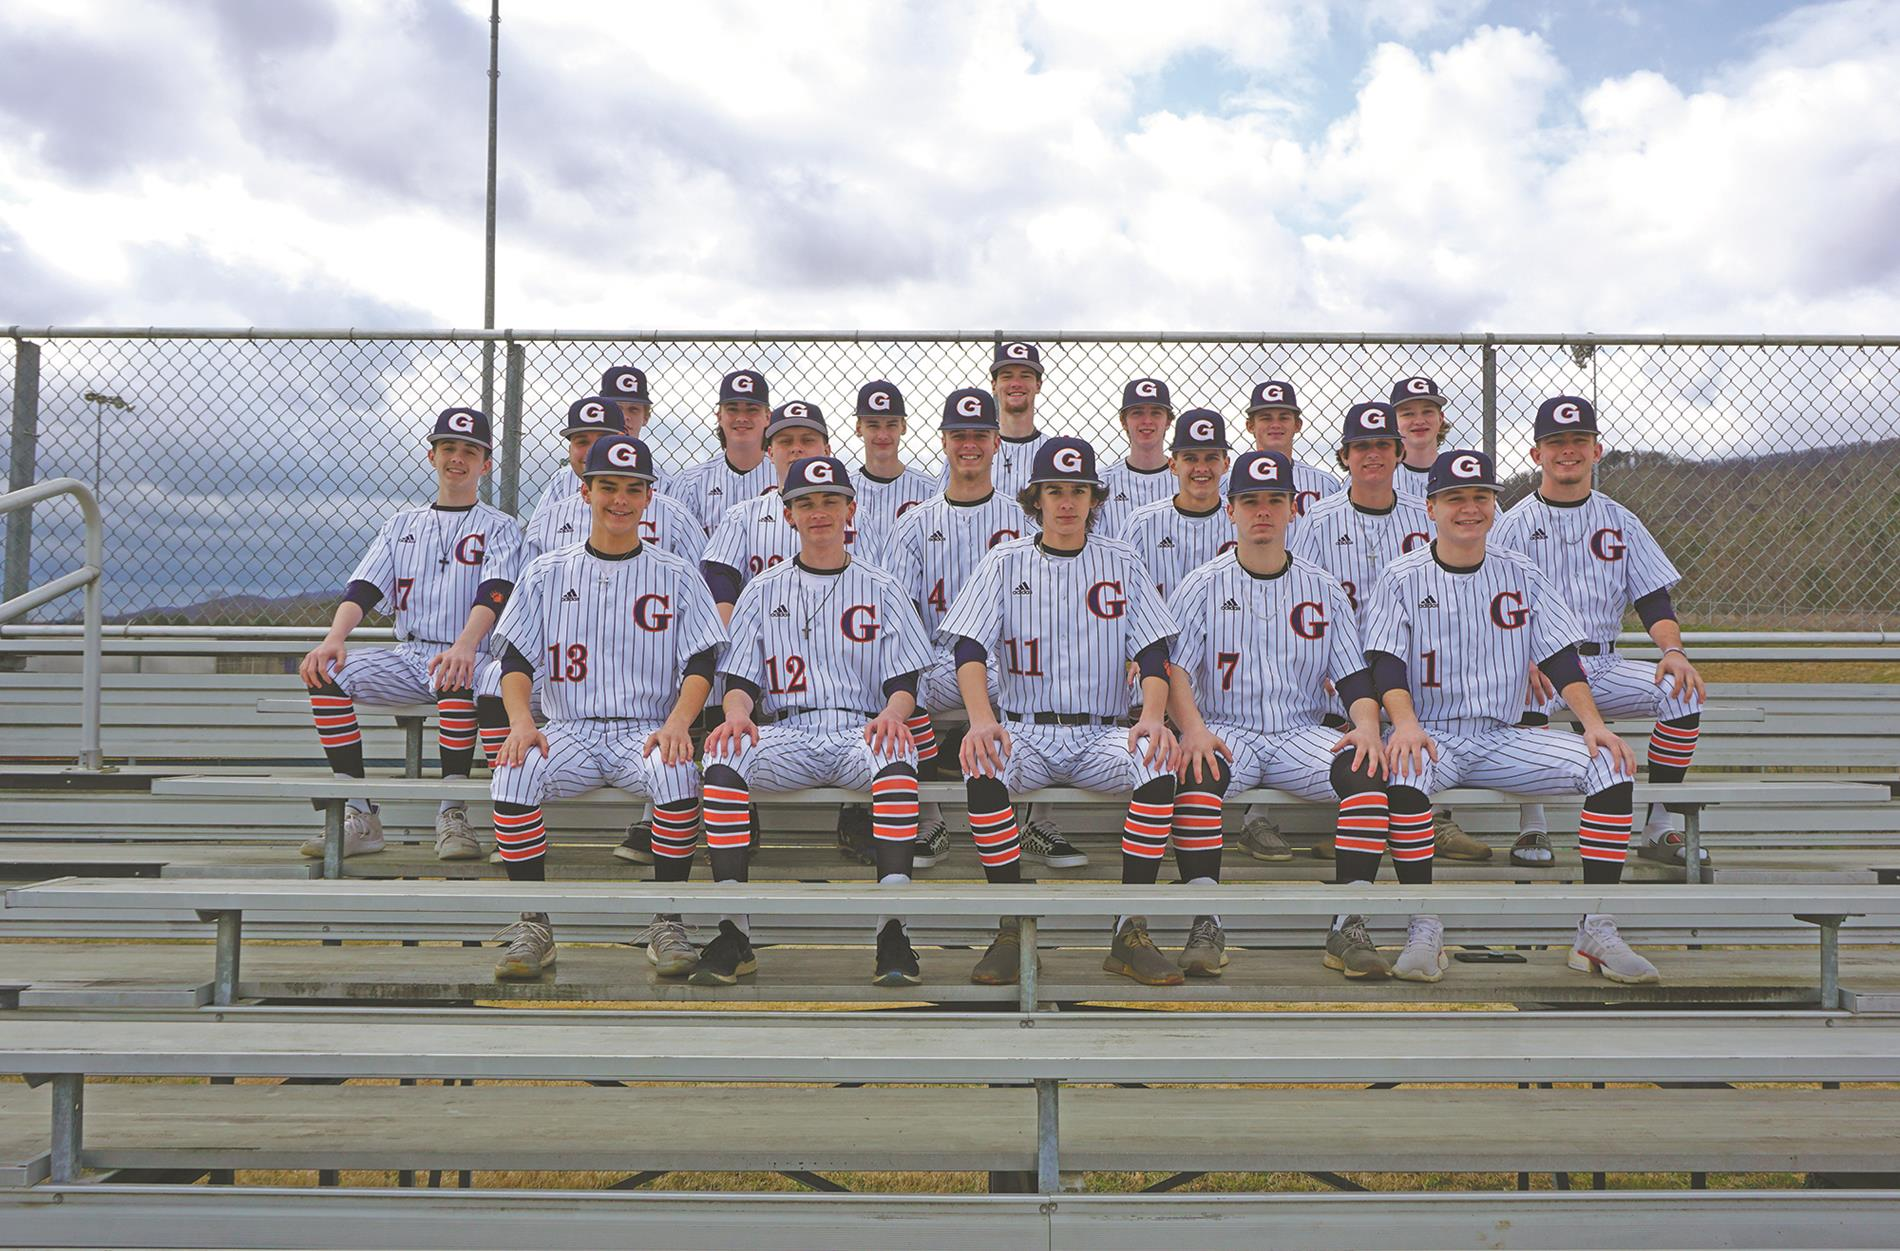 Baseball team picture